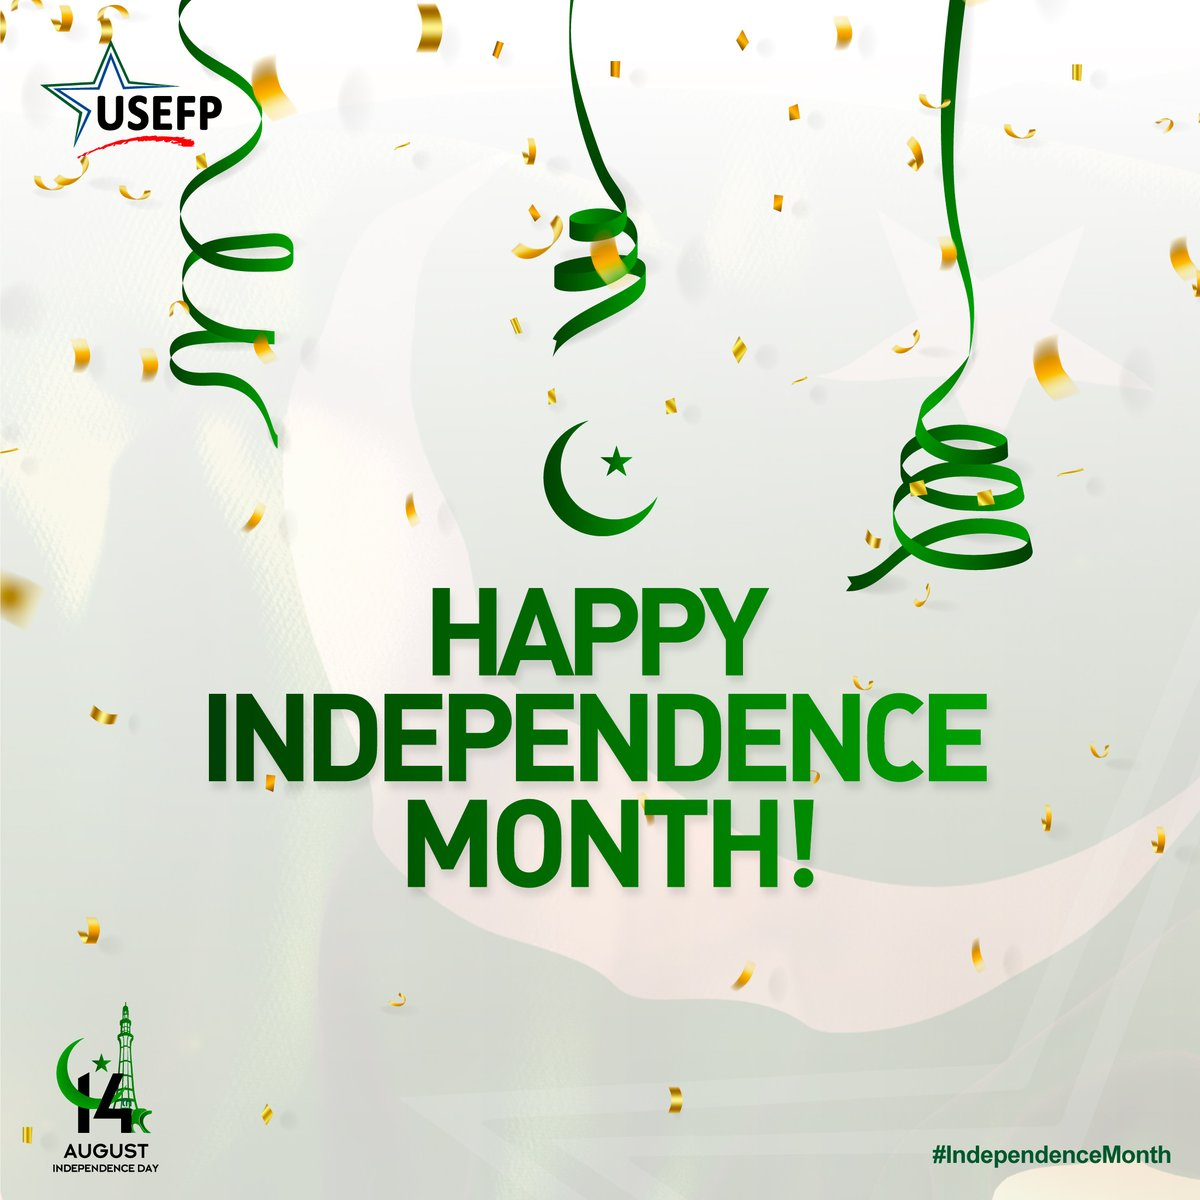 Are you a #USEFP managed program grantee or alum? Share your experience of celebrating 🇵🇰 Independence Day in 🇺🇸 and get featured on our social media. Email us your celebratory picture at communications@usefpakistan.org   #IndependenceMonth  #USPAKStories  #Partners4Prosperity https://t.co/BXphItxuLr